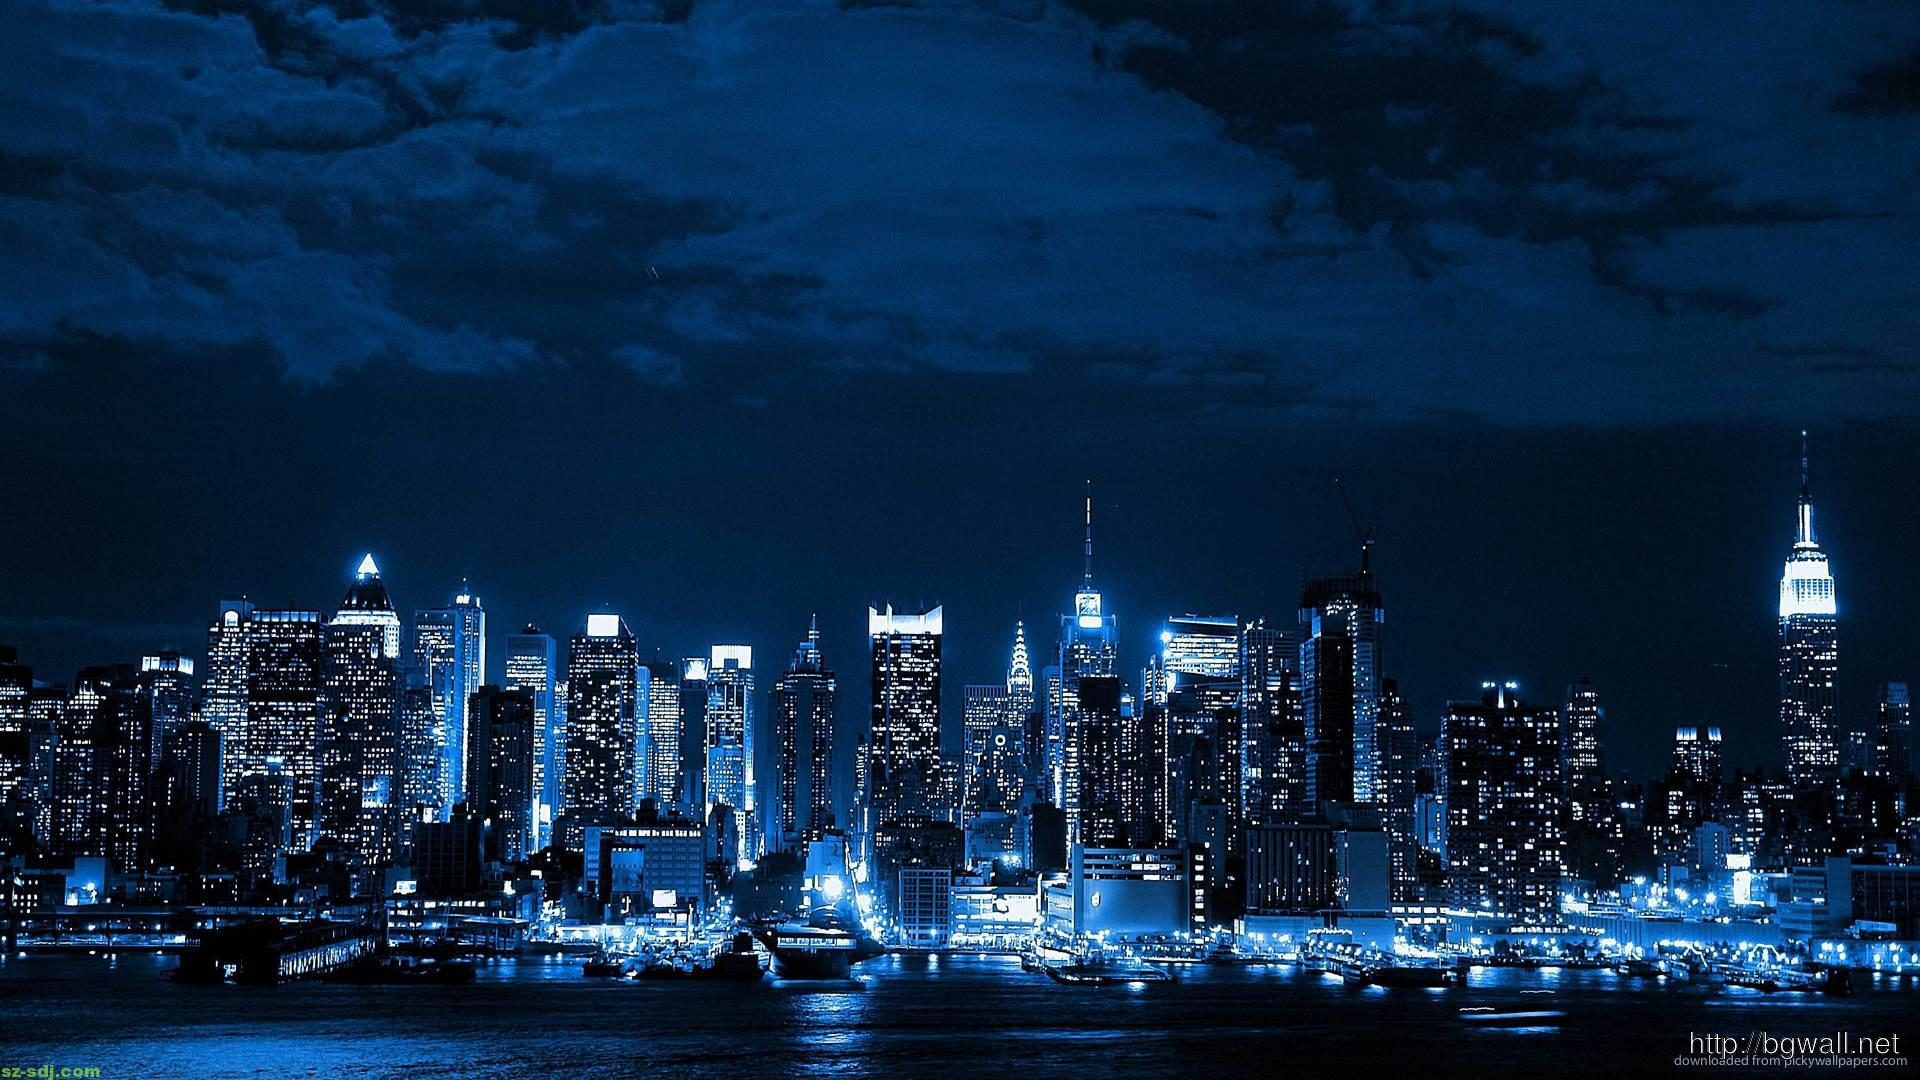 Wonderful Wallpaper Night Cities - blue-night-city-wallpaper-picture  Graphic.jpg